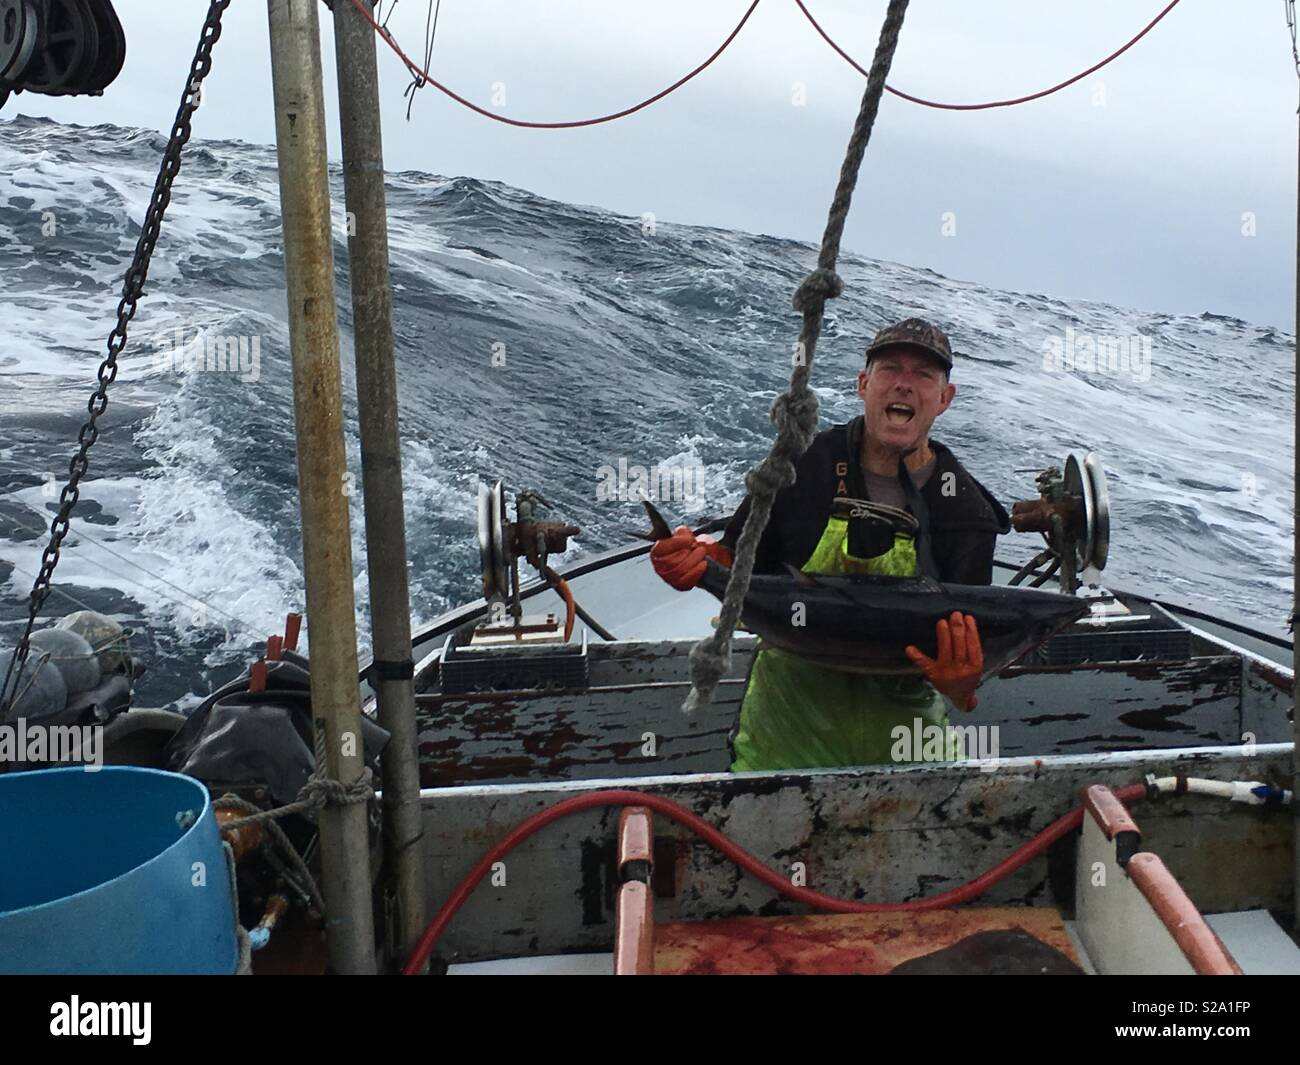 Fearless independent commercial fisherman lands albacore tuna on the deck of his 100 year old wooden fishing vessel in rough weather. - Stock Image